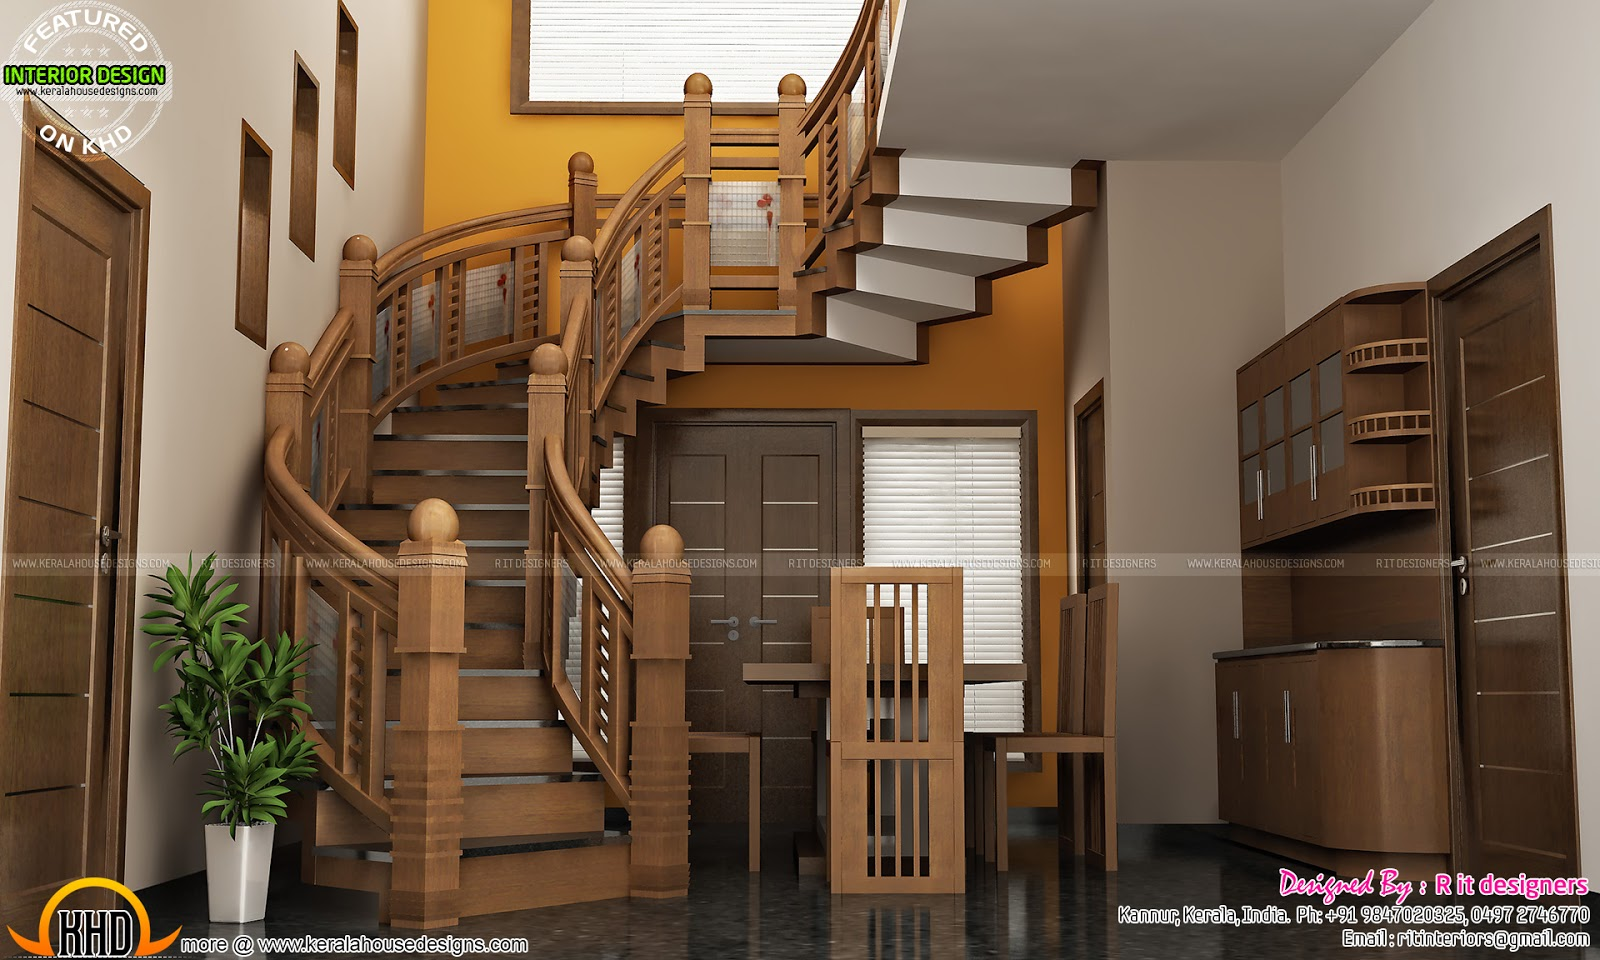 Under stair design wooden stair kitchen and living for How to design house interior